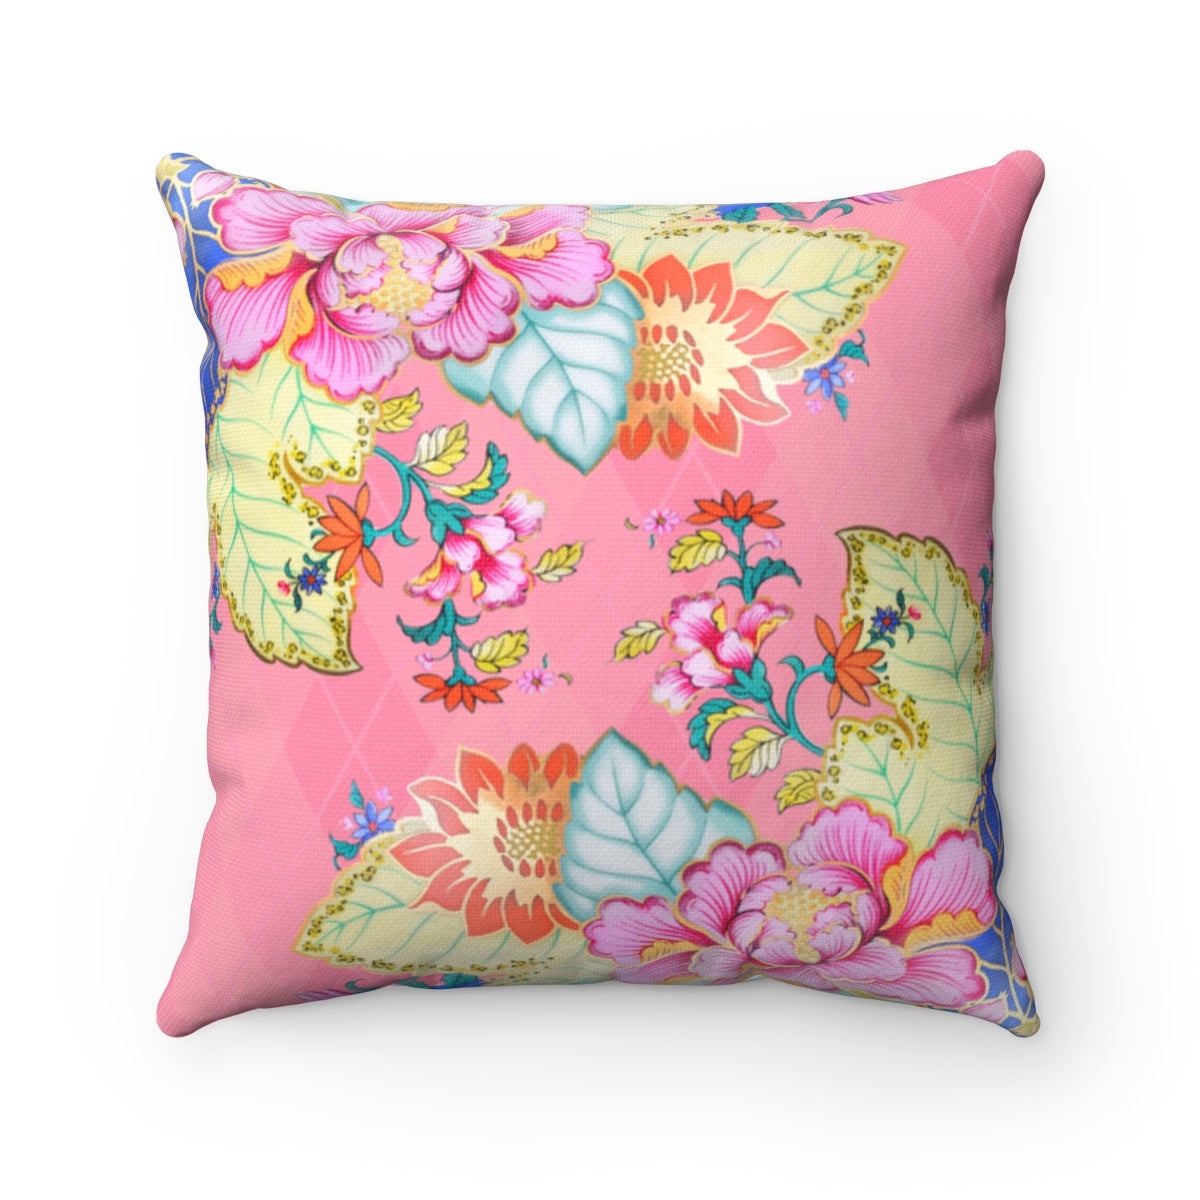 Blush Pink Chinoiserie tobacco leaf china throw pillow cover